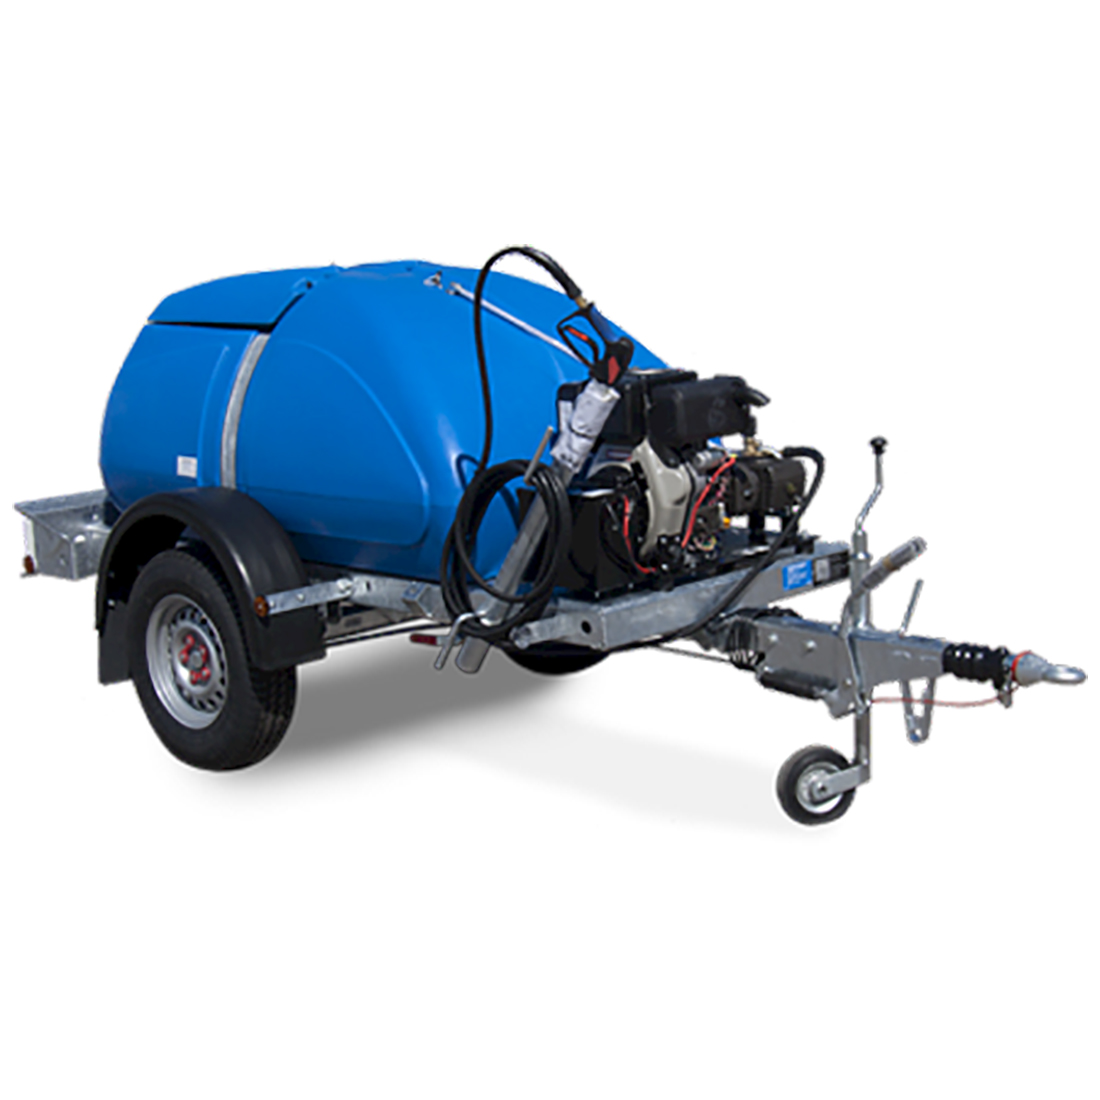 250G Diesel Pressure Washer and Bowser